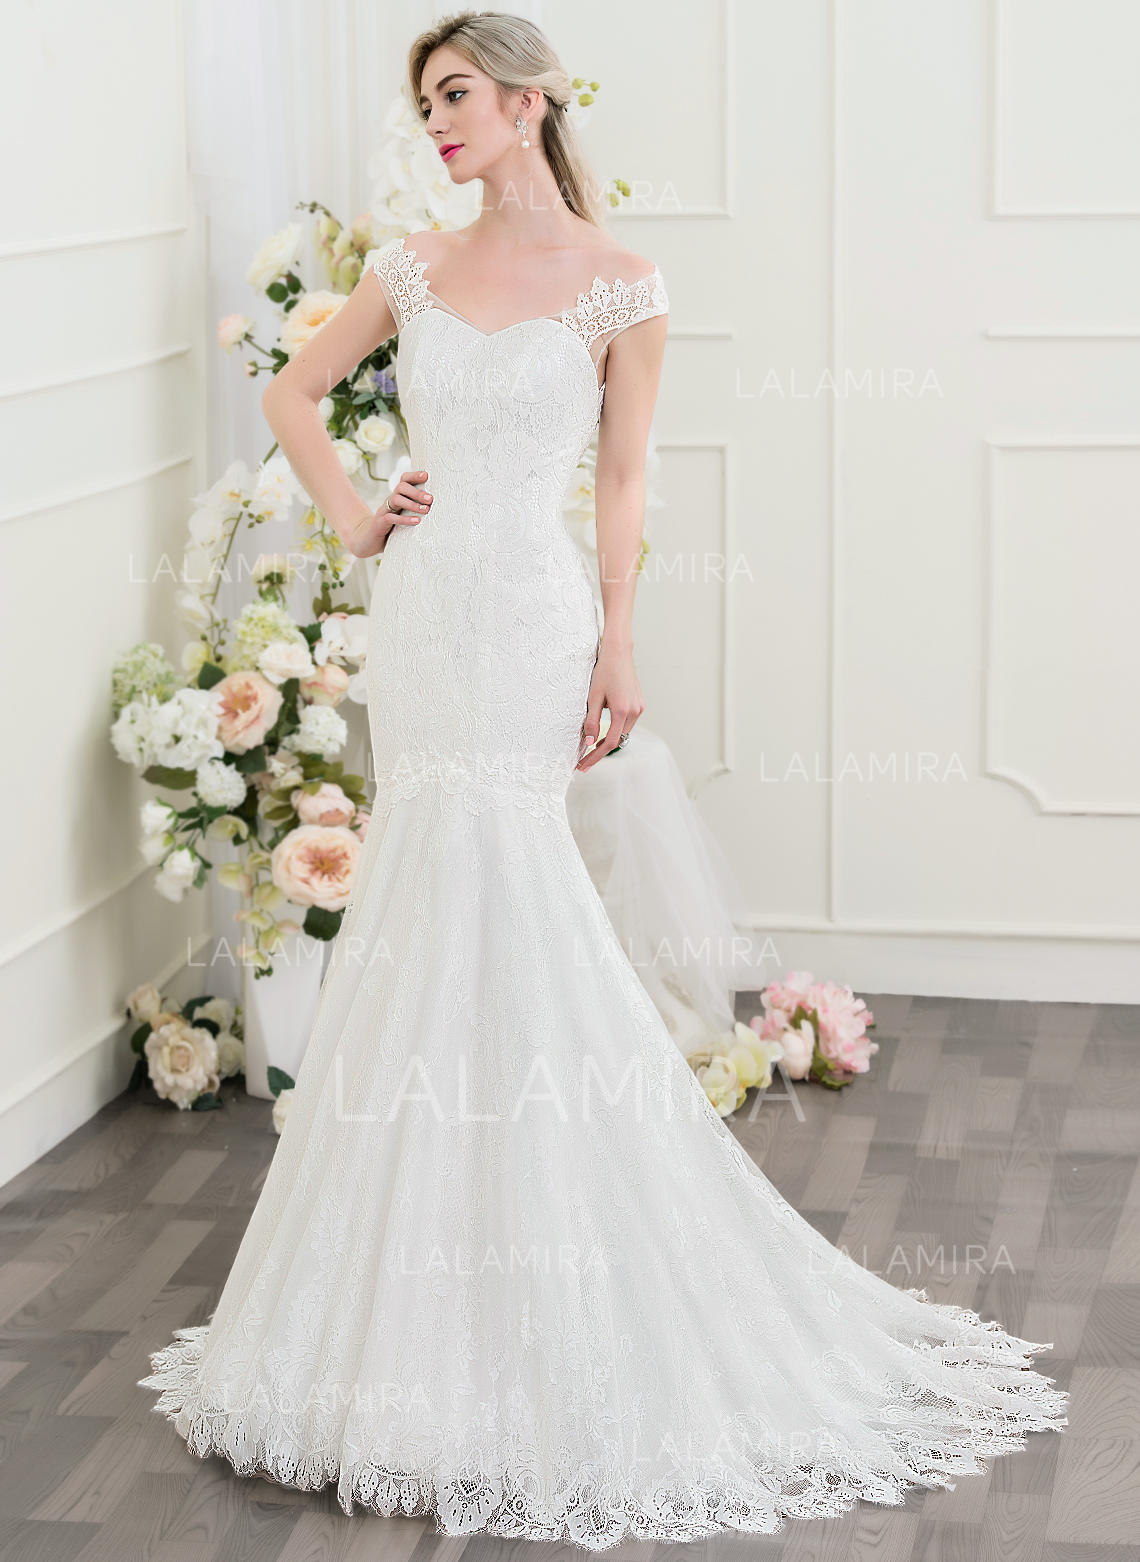 Bridal Designers Have Seriously Outdone Themselves With ...